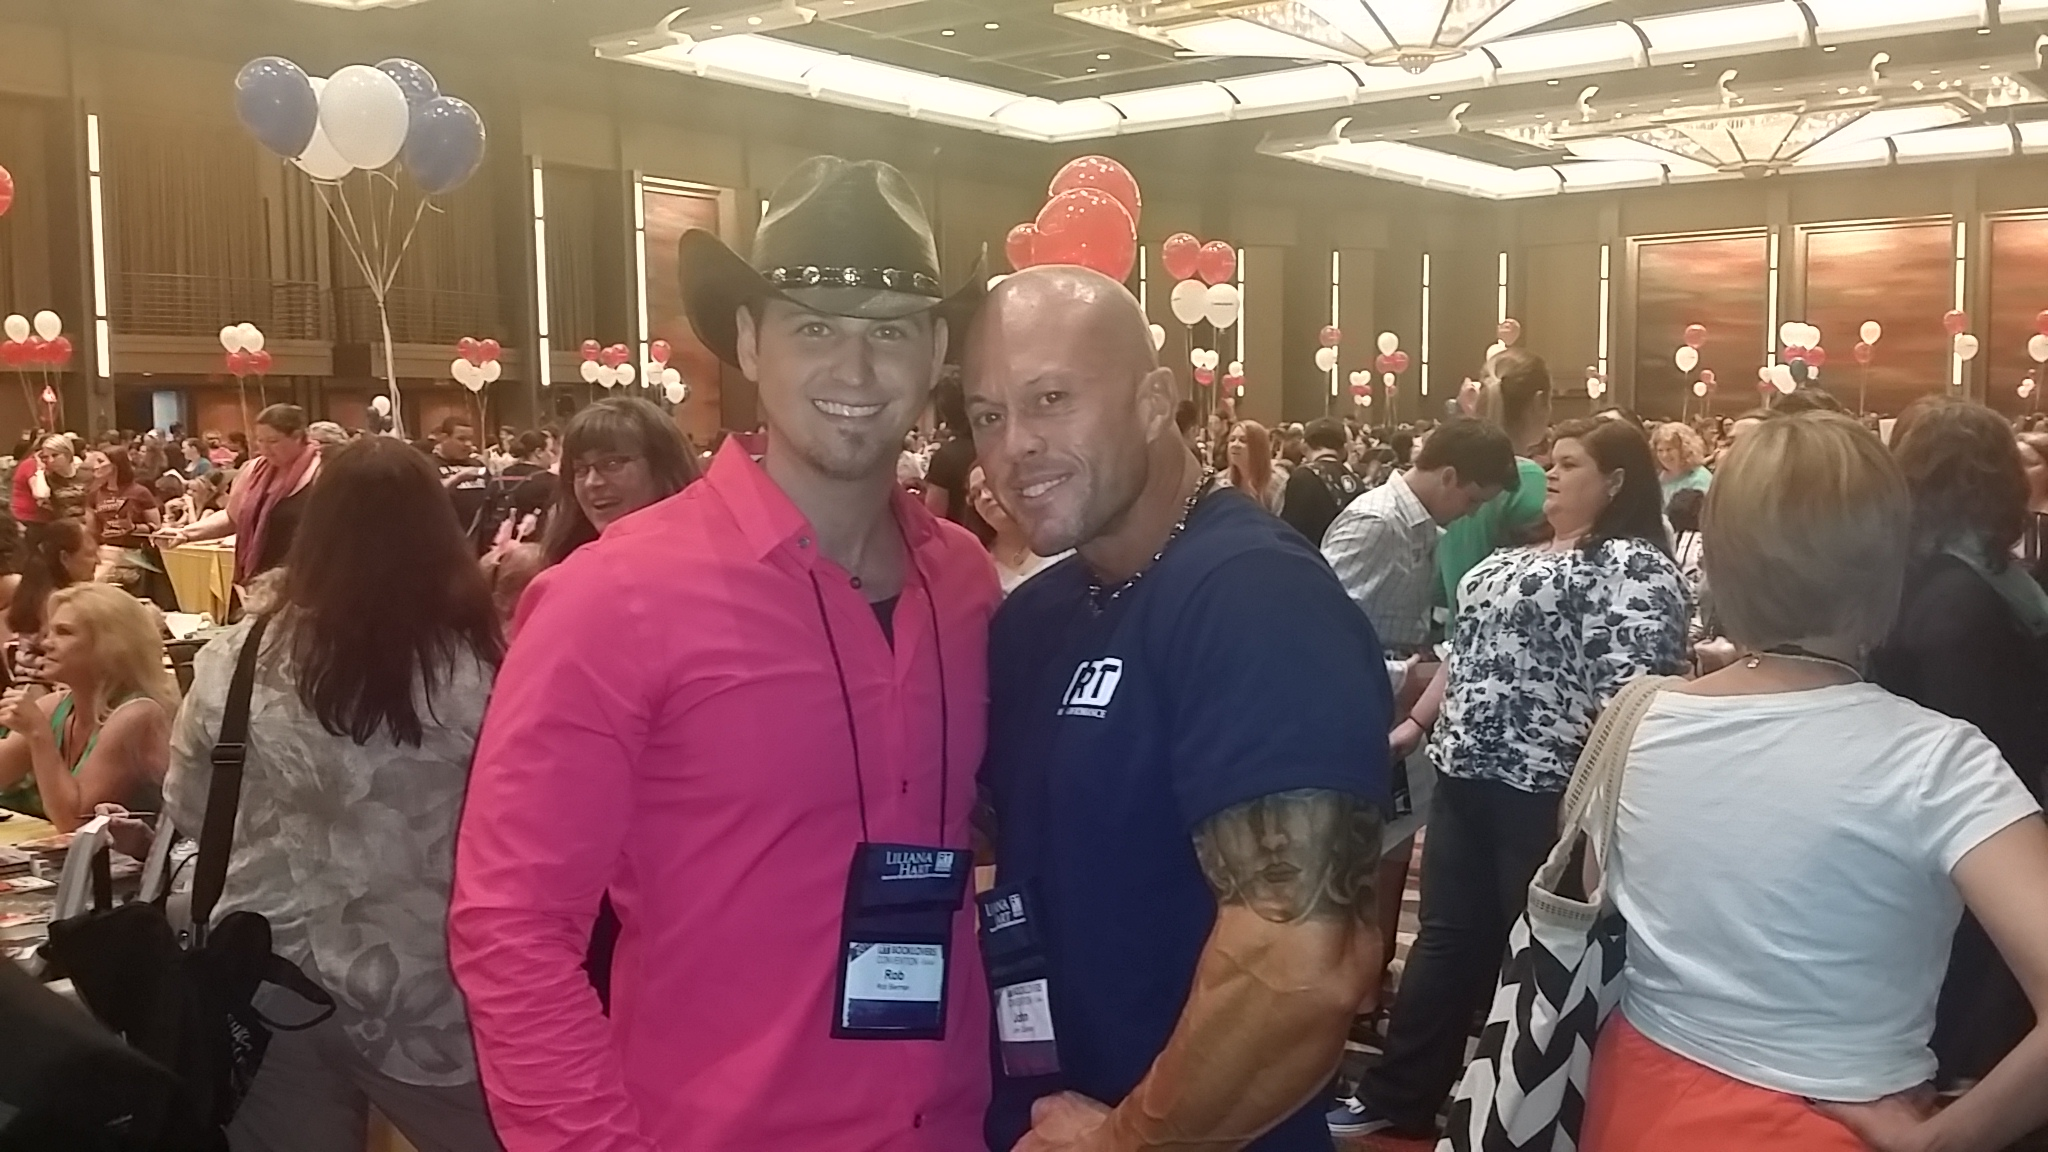 2015 Featured RT Cover Model John Joseph Quinlan & Rob Bierman. #JohnQuinlan